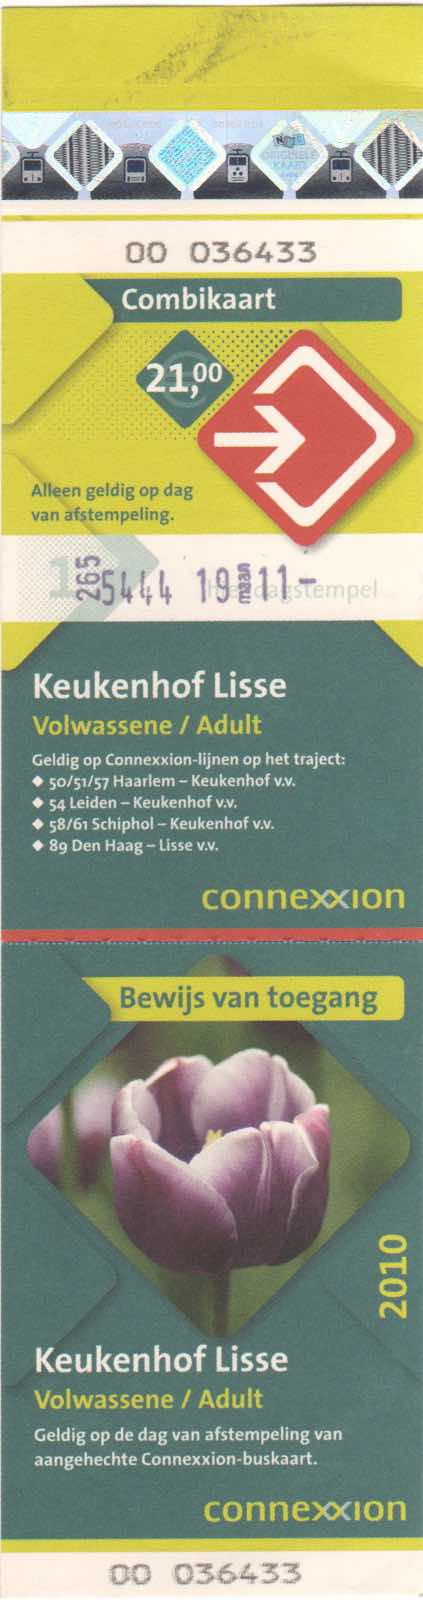 ticket for Connexxion bus and entrance to Keukenhof (2010)